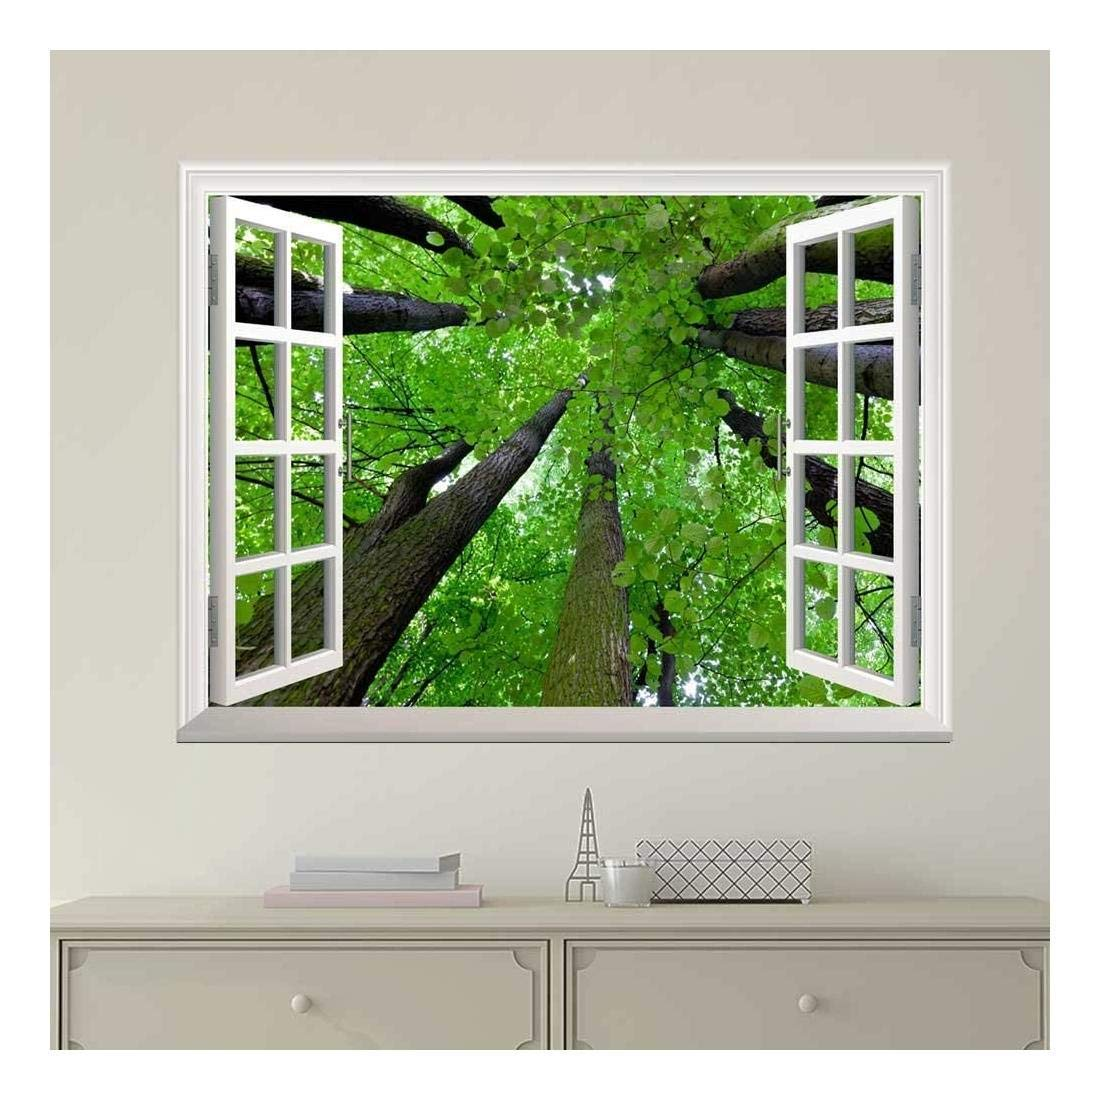 wall26 Modern White Window Looking Out Into the Top of the Trees - Wall Mural, Removable Sticker, Home Decor - 36x48 inches